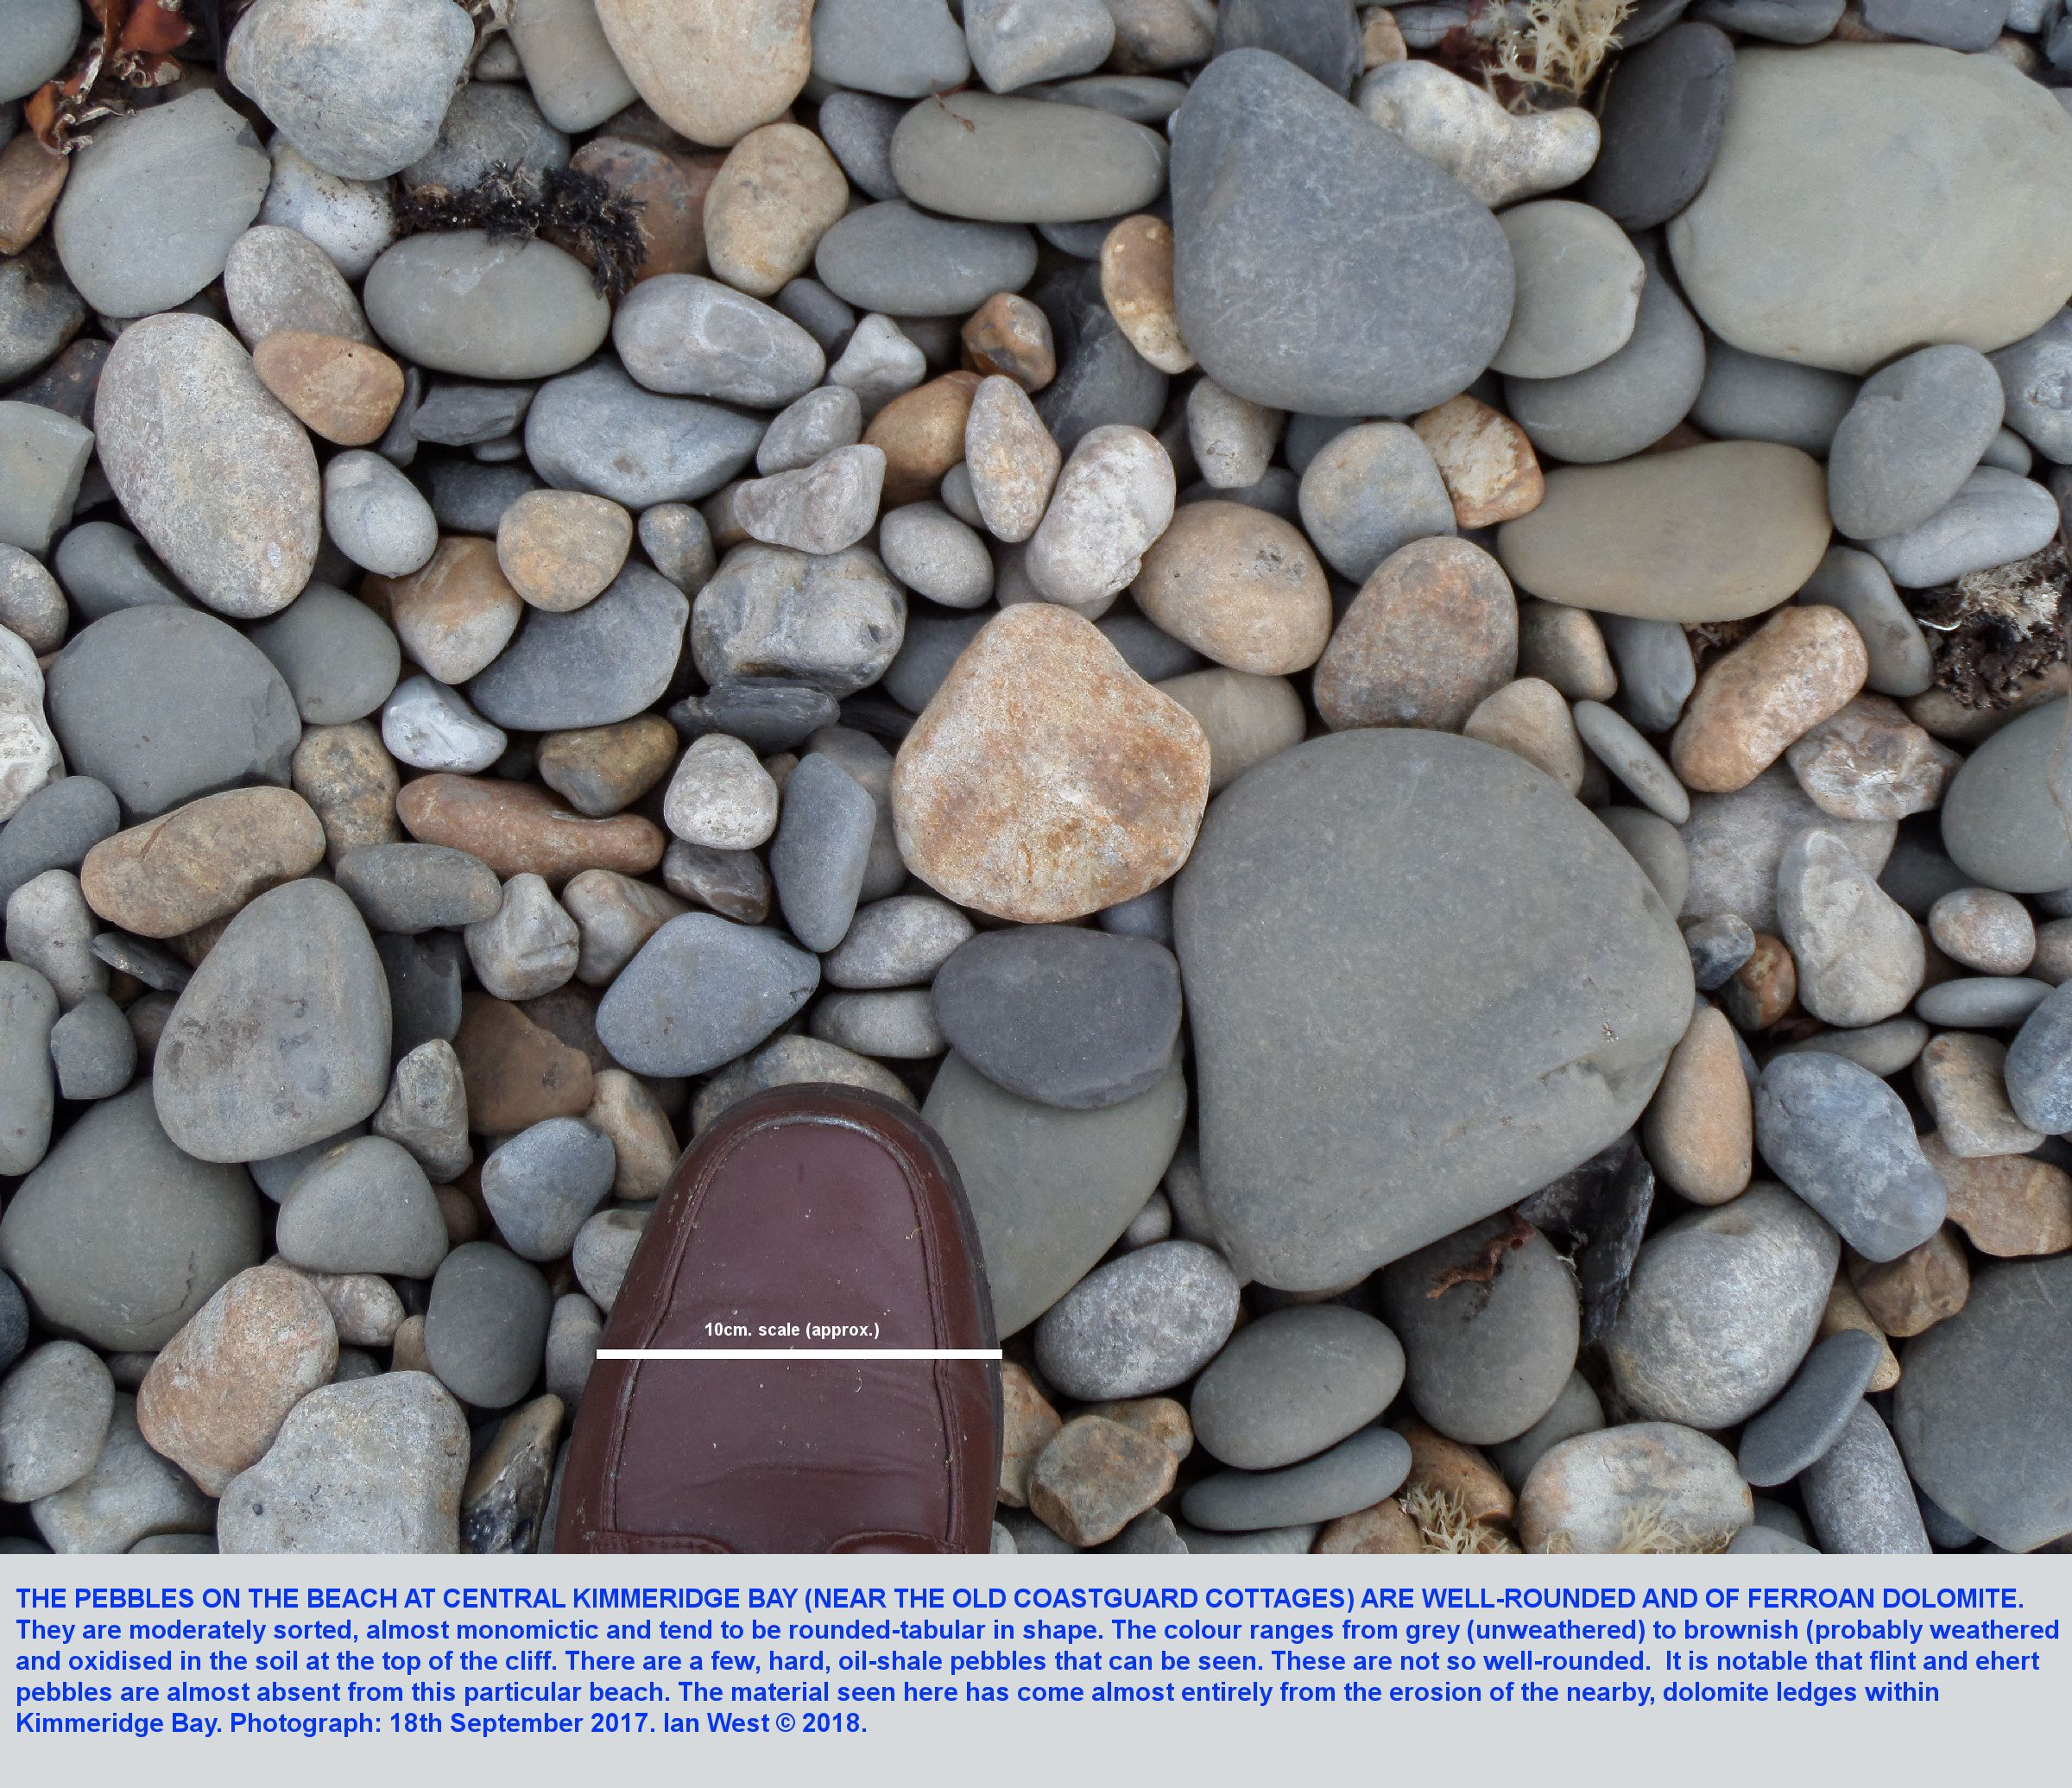 A closer view of beach pebbles of ferroan dolomite at  Kimmeridge Bay, Dorset